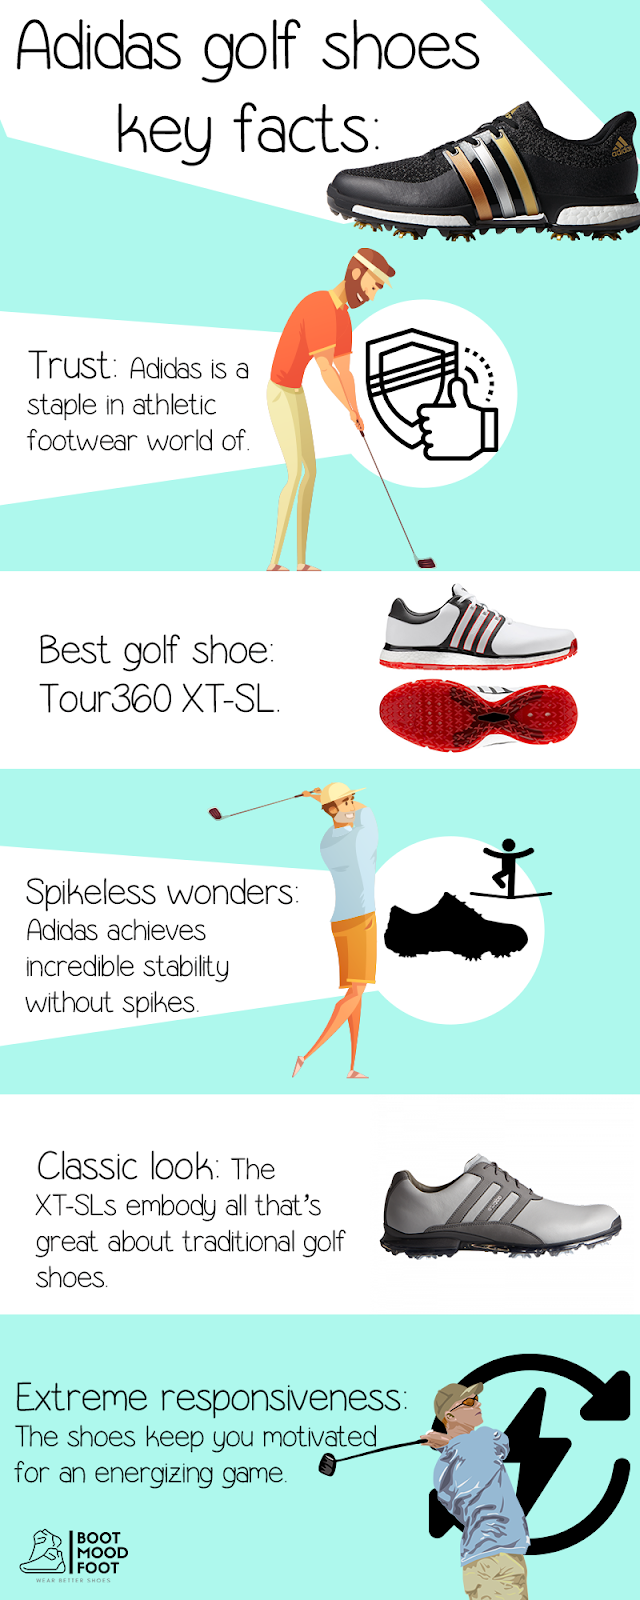 adidas golf shoes key facts